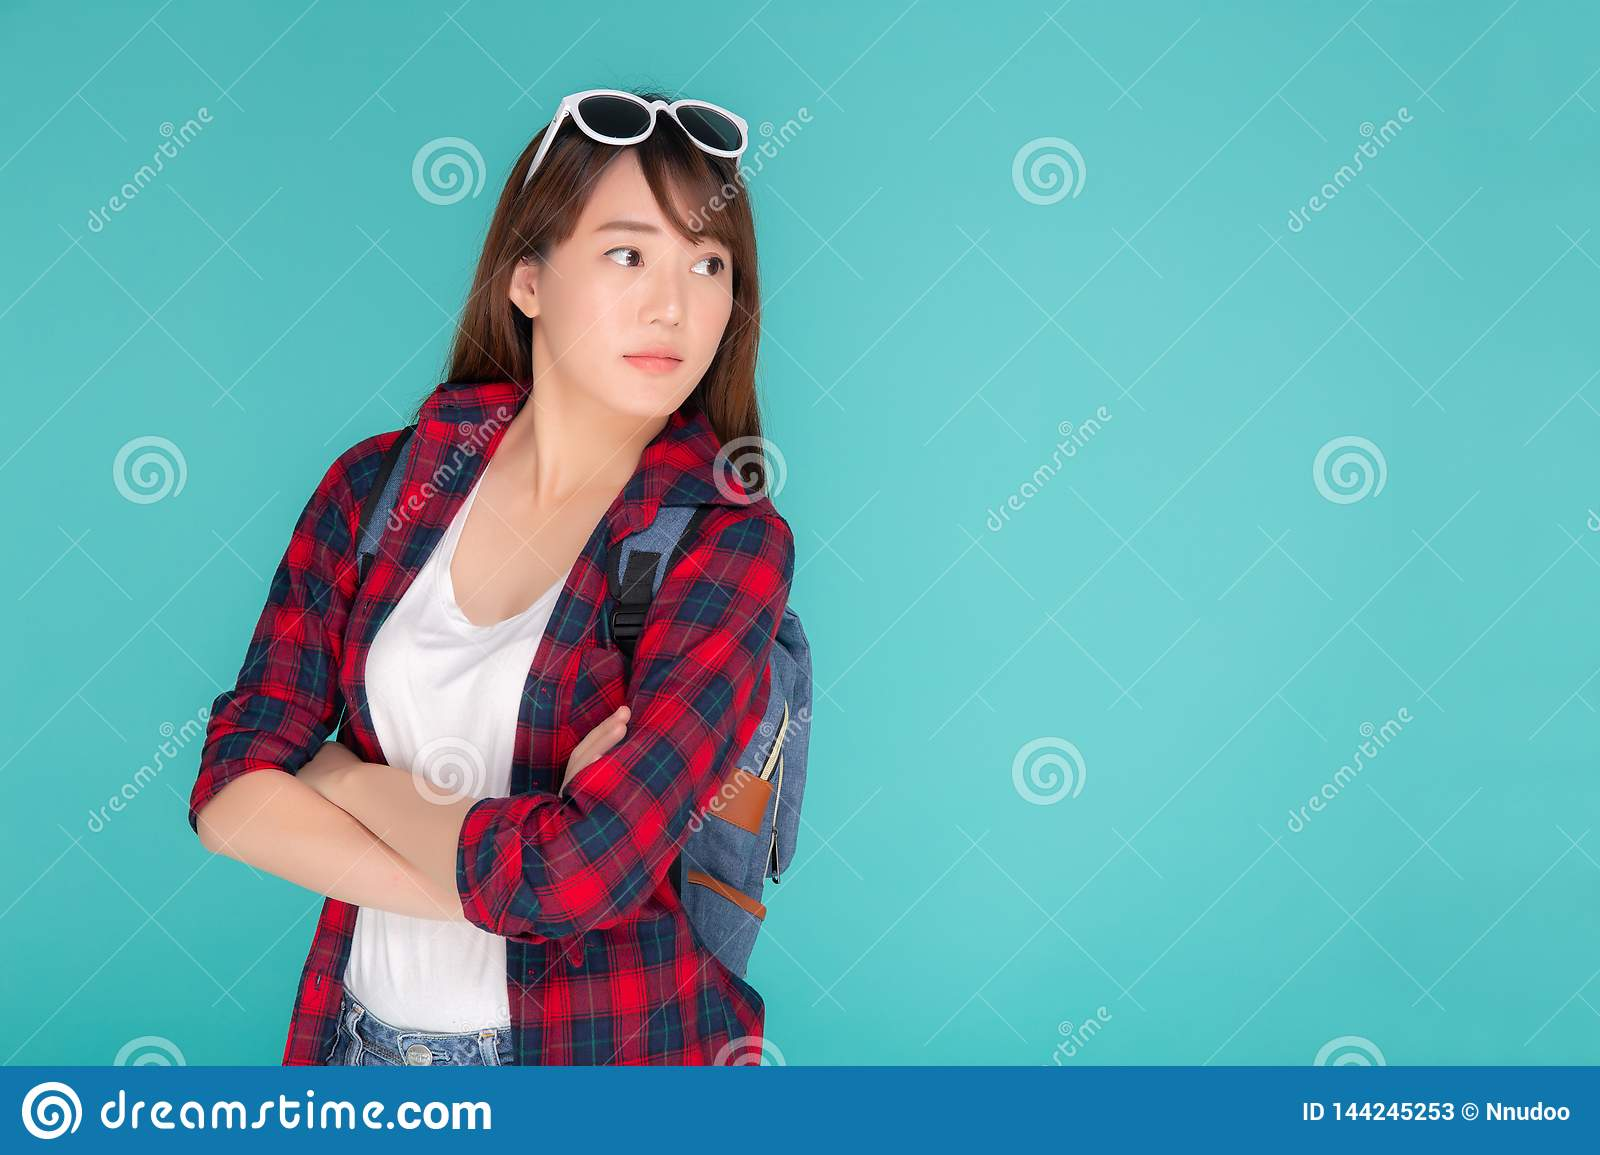 Beautiful portrait young asian woman wear sunglasses on head smile expression confident enjoy summer holiday isolated